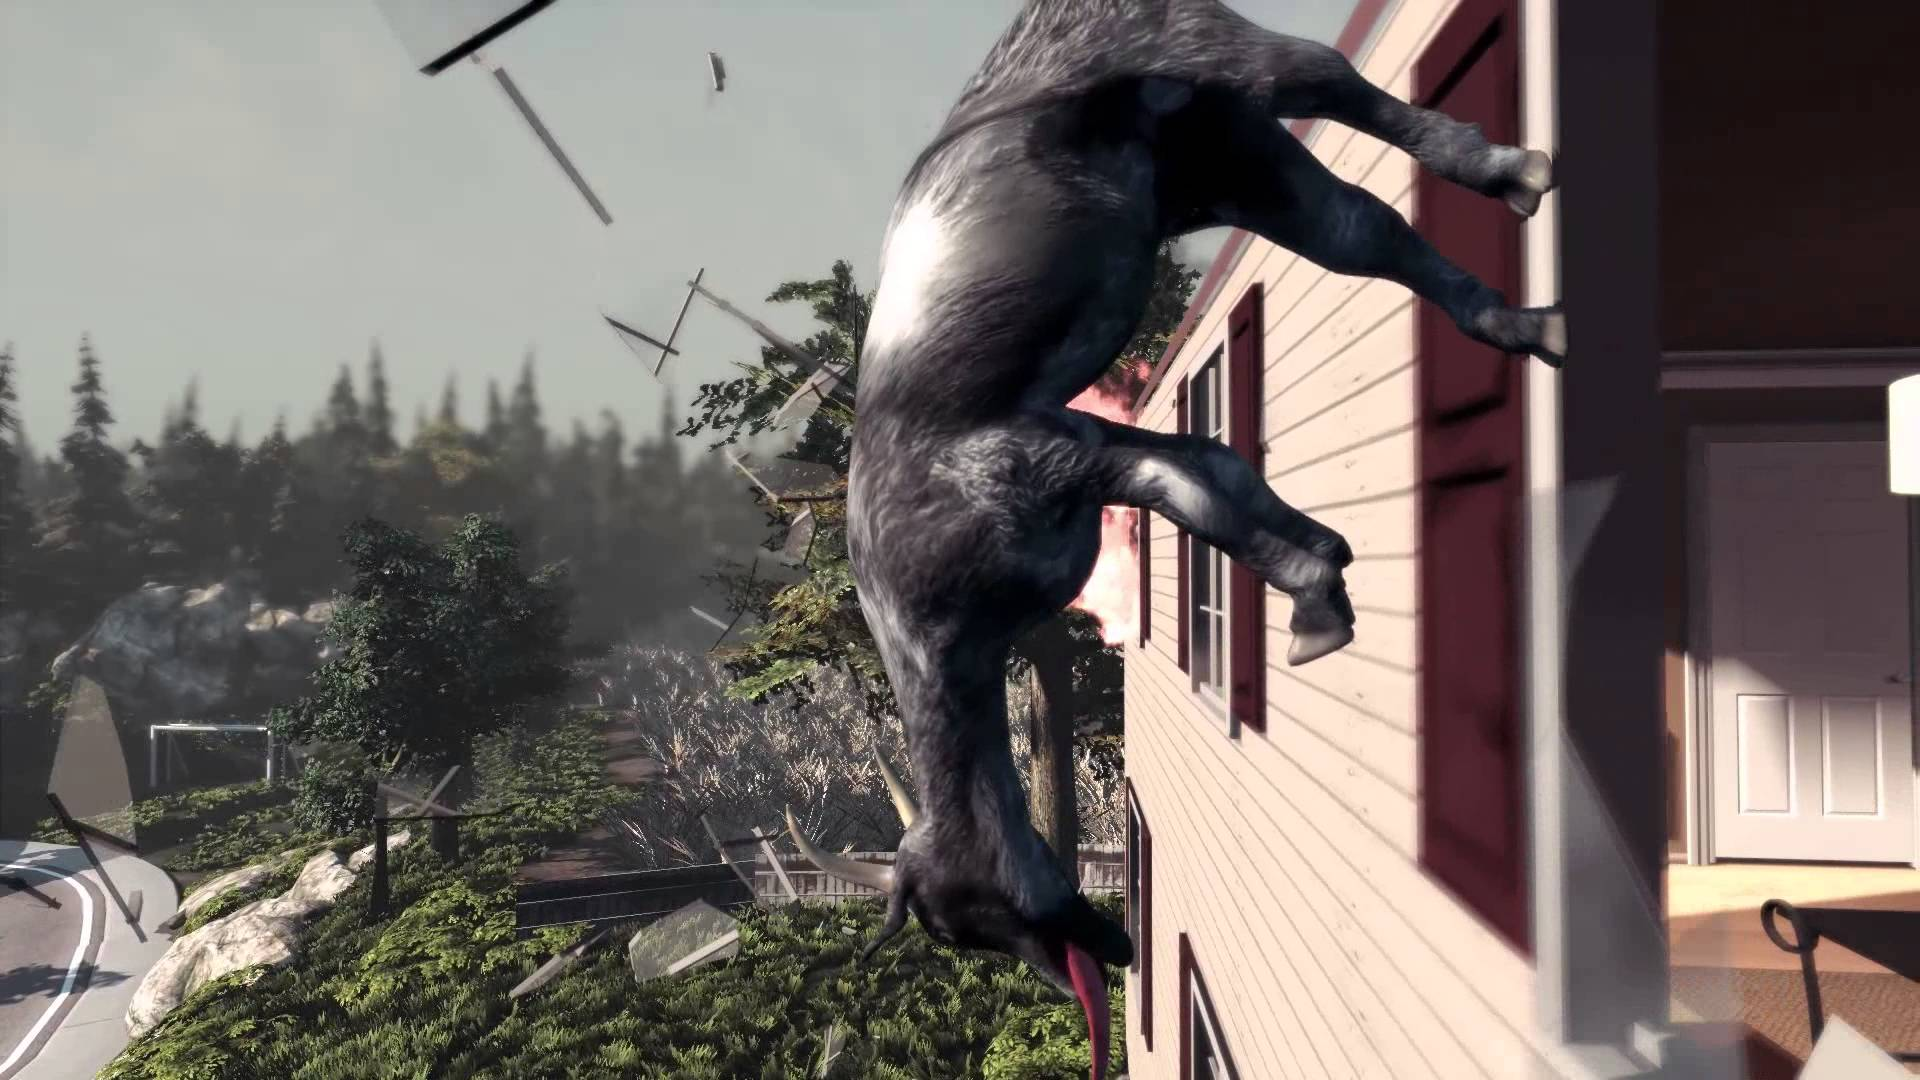 Naturally, a goat breaks through a window in Goat Simulator.